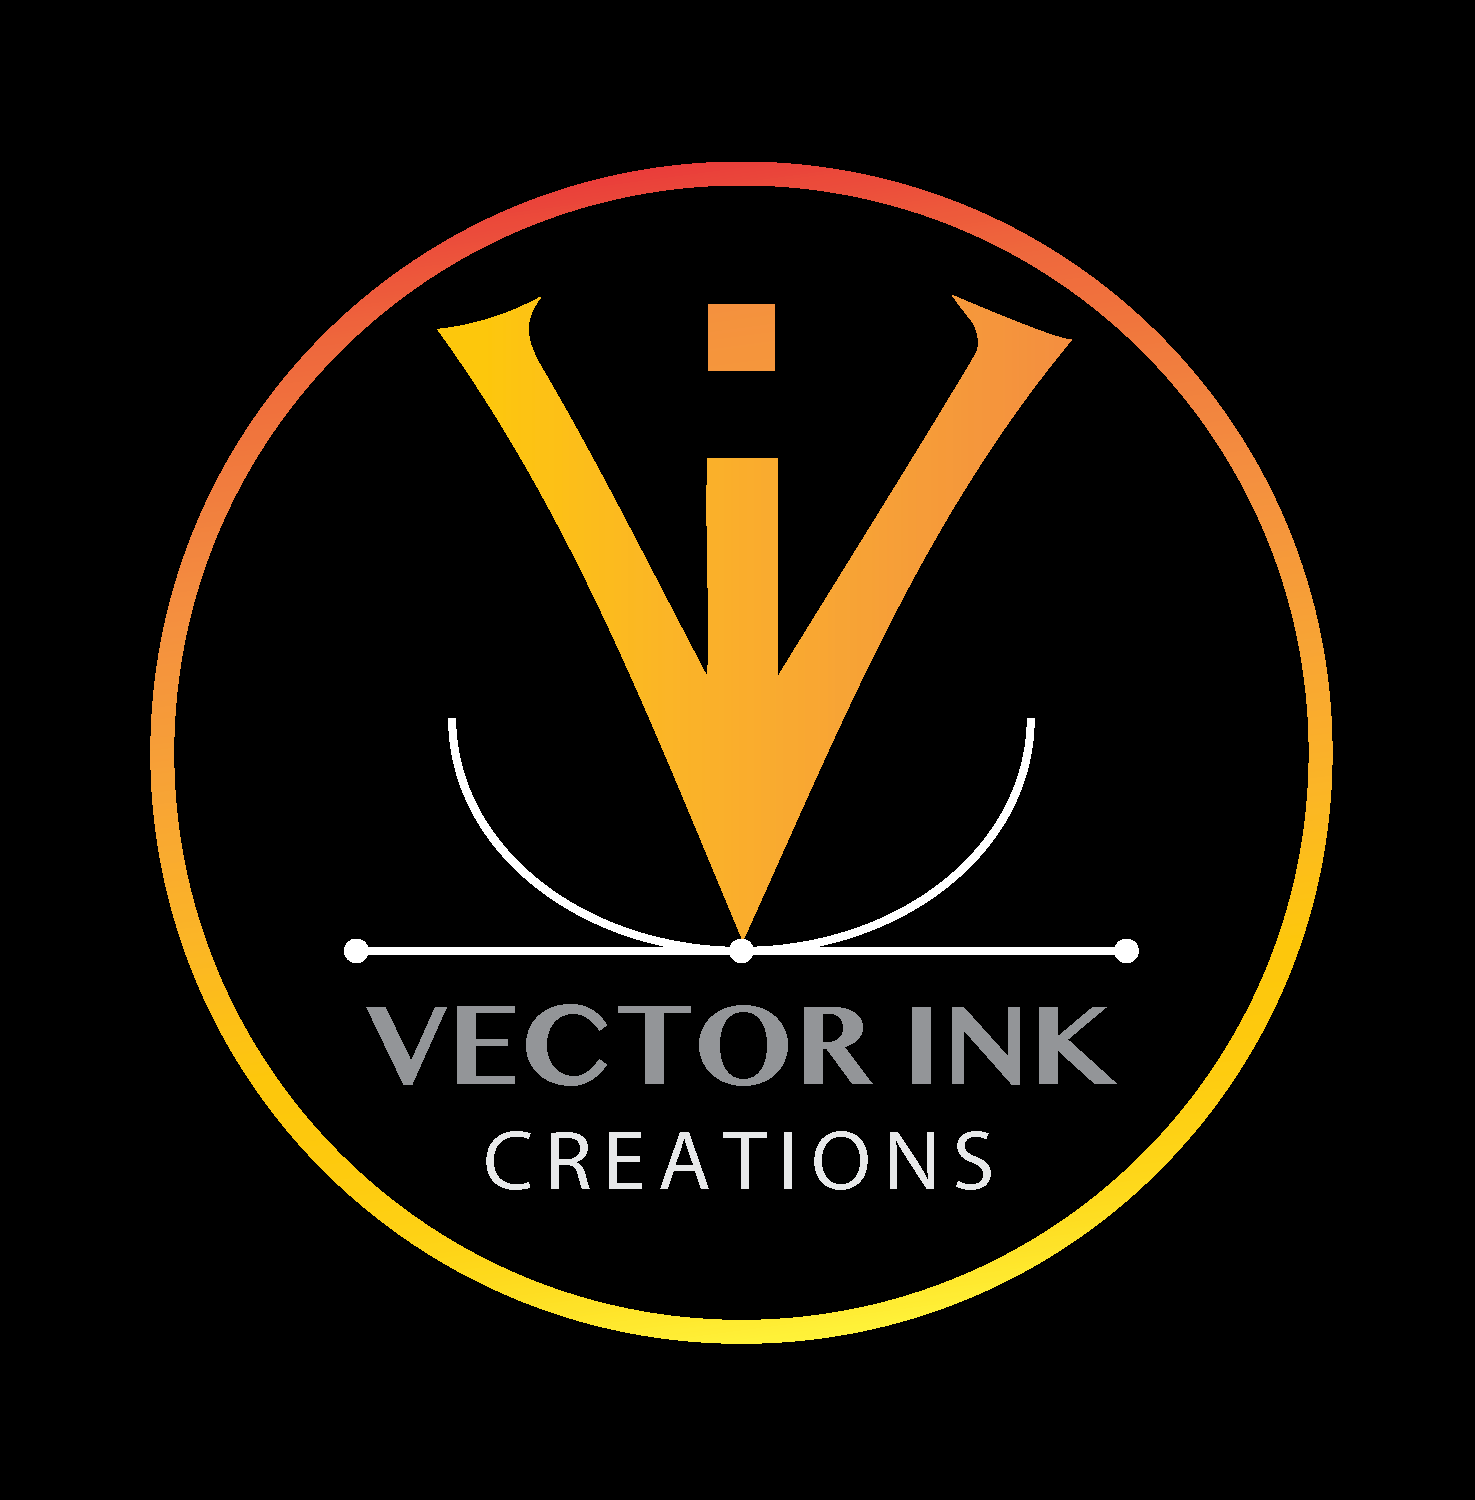 Vector Ink Creations primary image